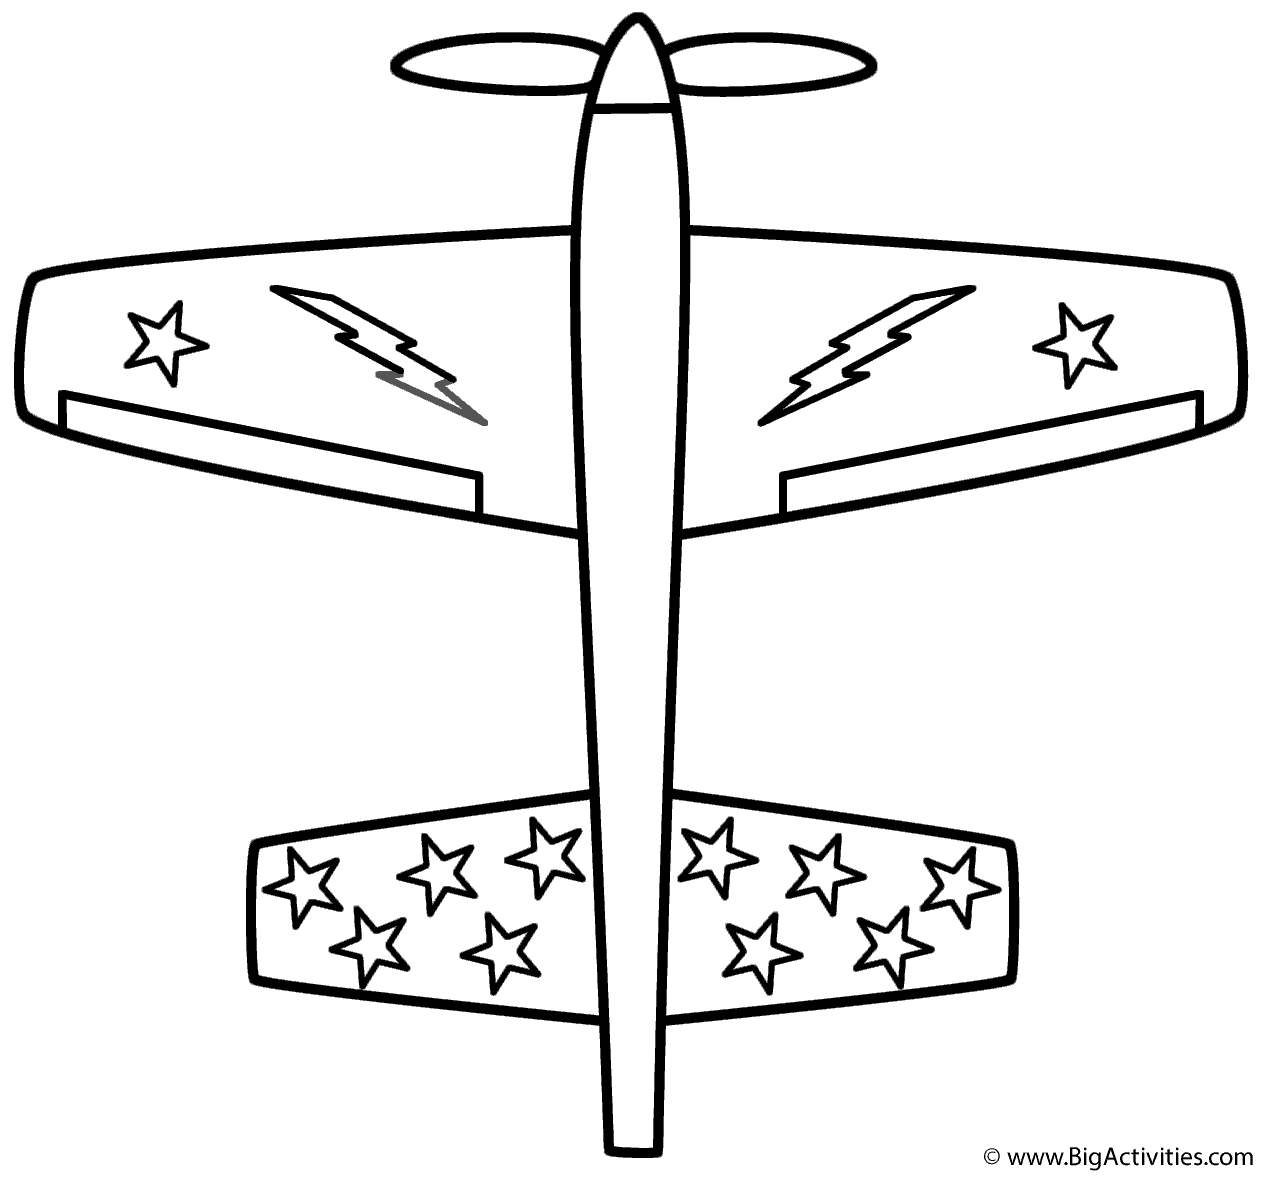 Airplane With Stars